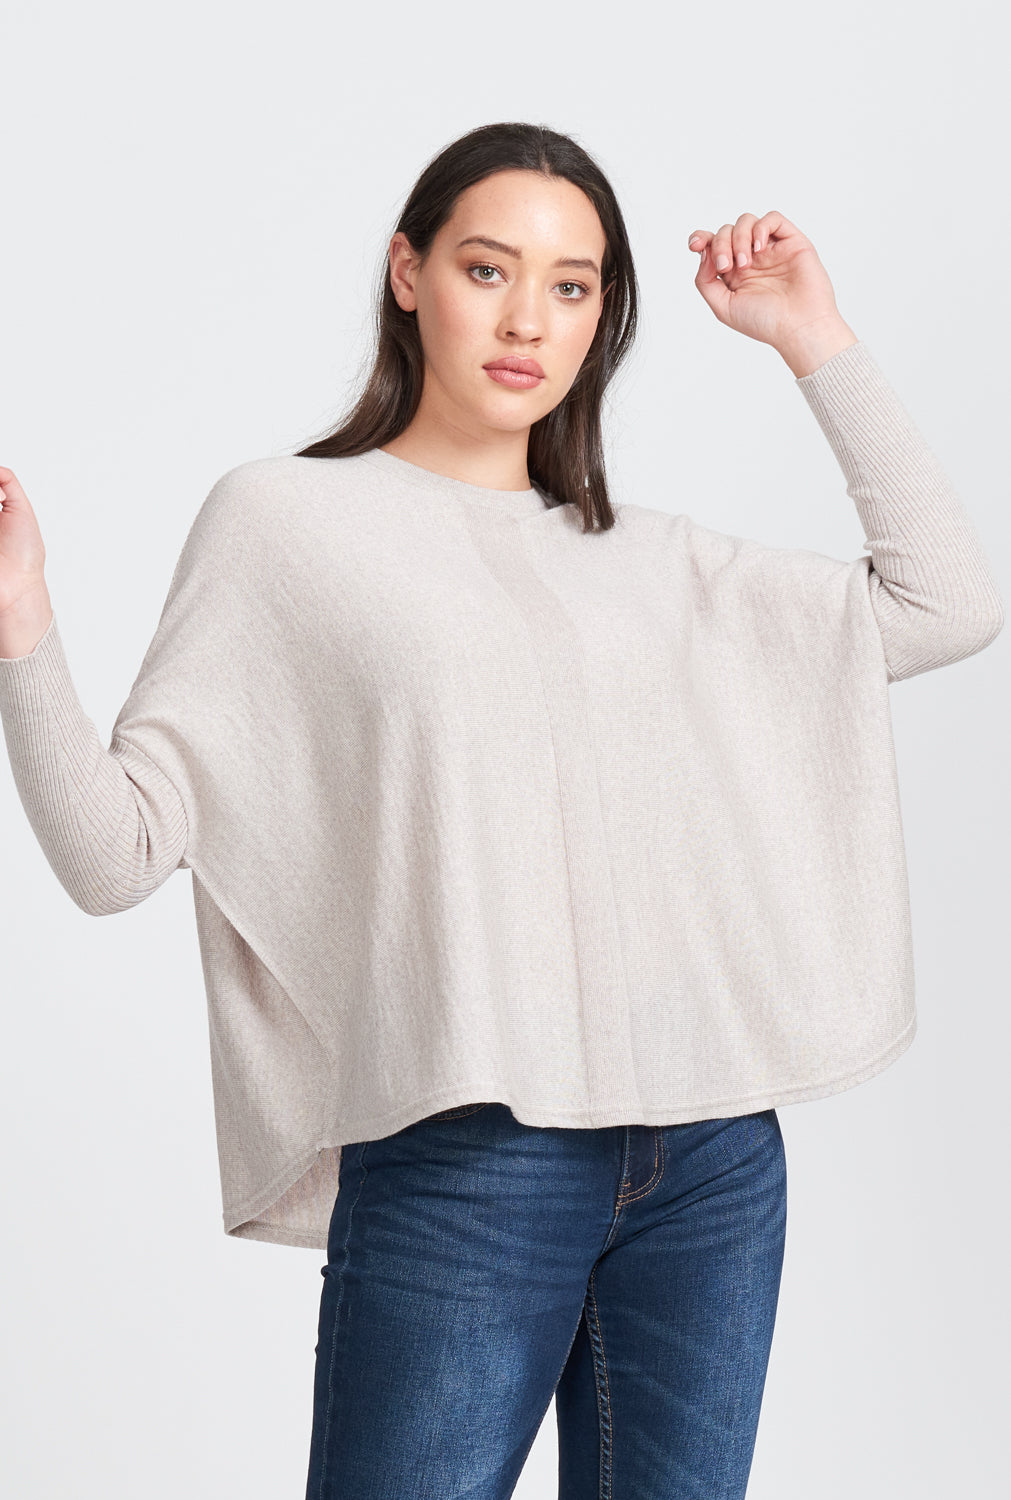 Ladies oversized ribbed sleeve Jumper.